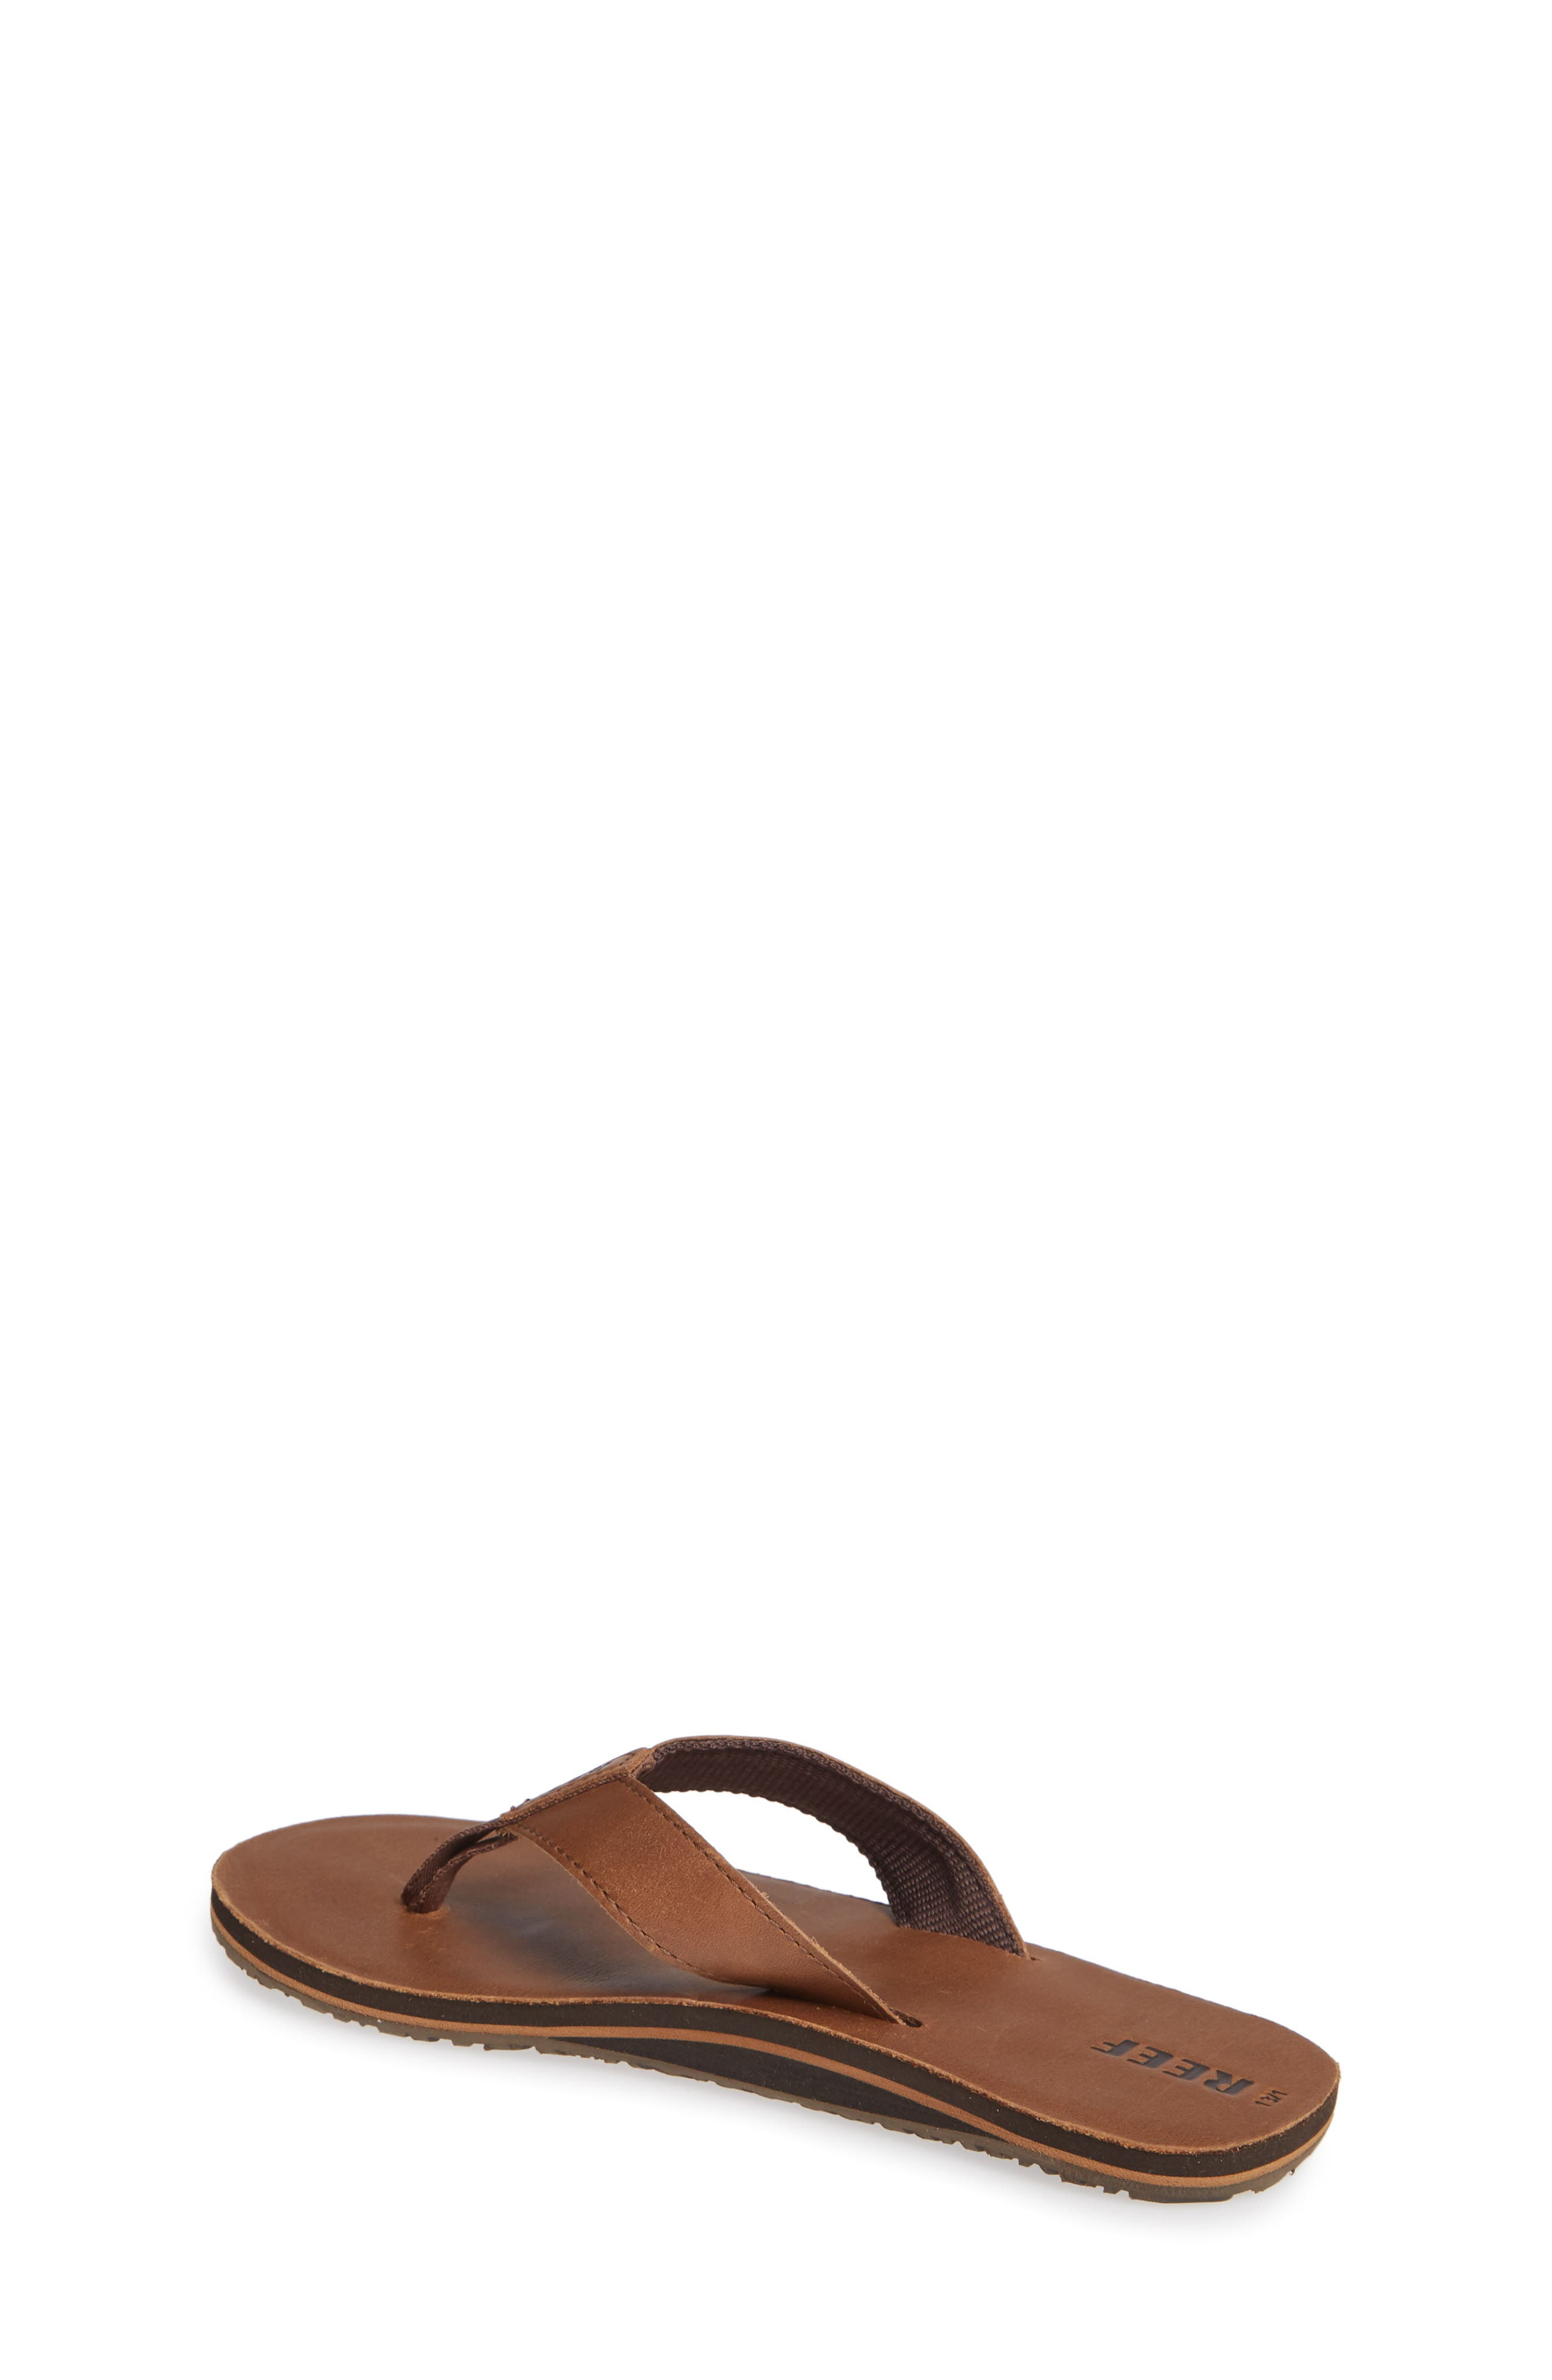 REEF, Smoothy Flip Flop, Alternate thumbnail 2, color, BRONZE BROWN